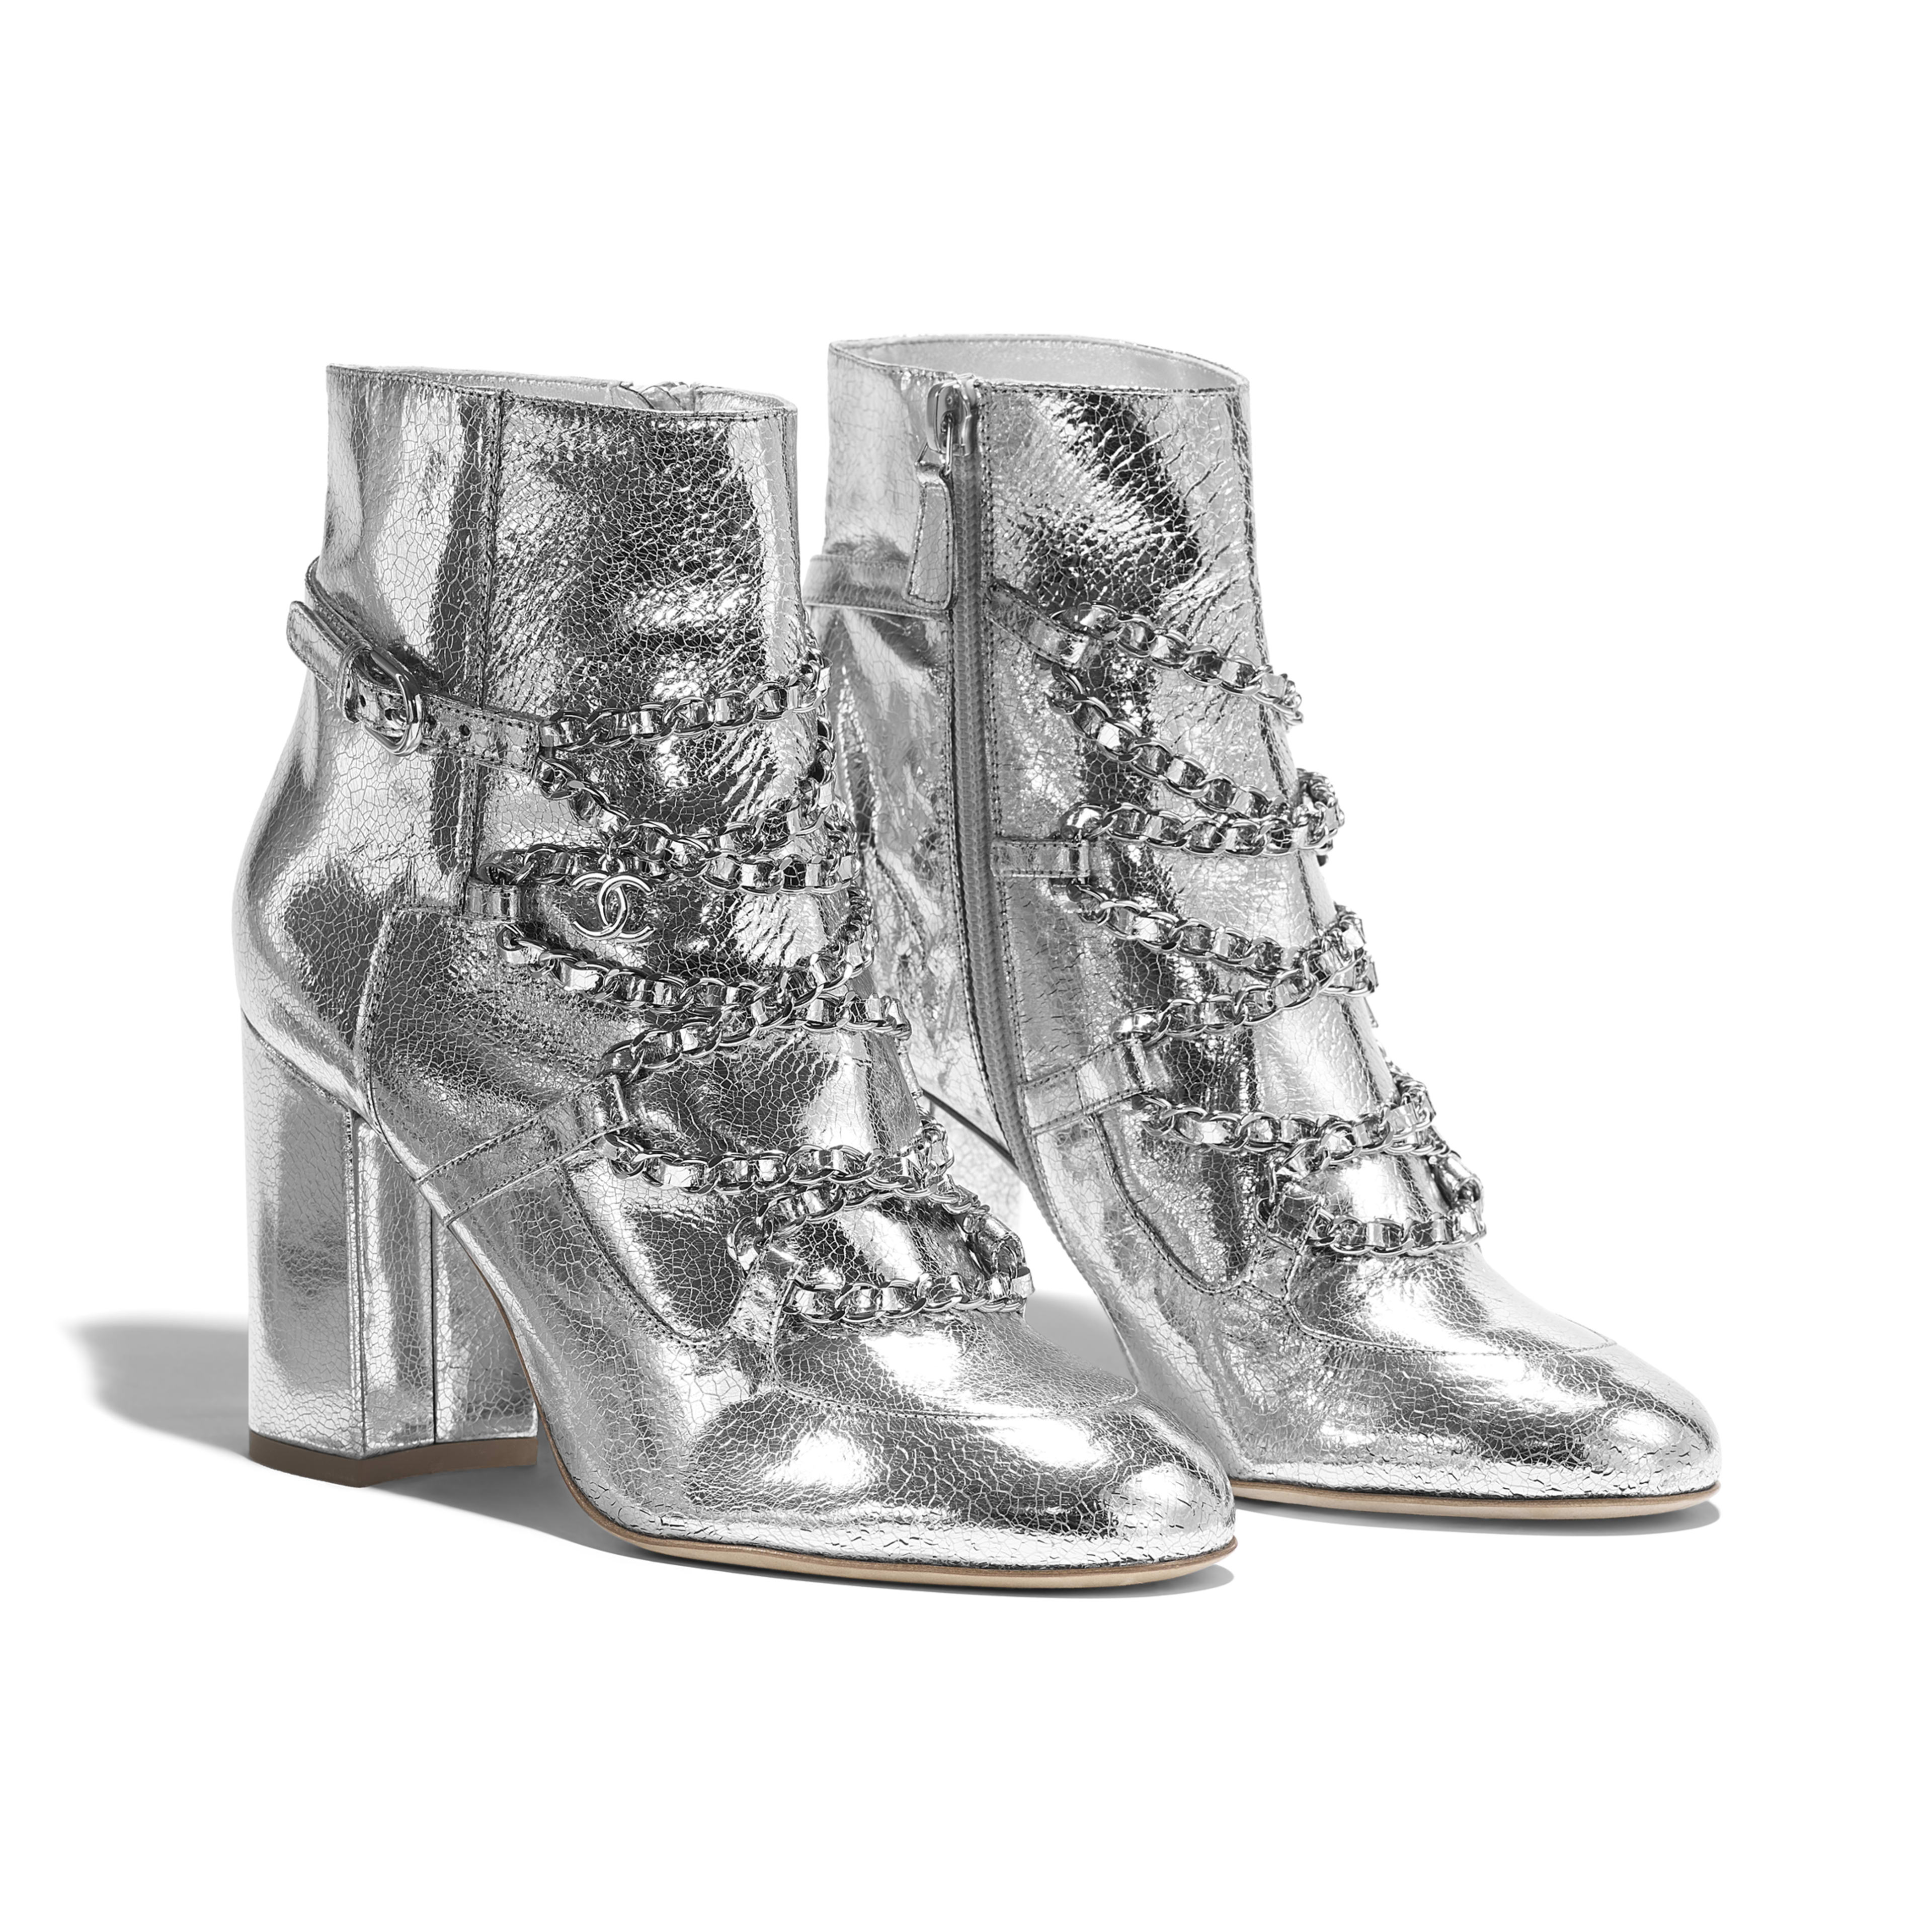 Short Boots - Silver - Laminated Goatskin - Alternative view - see full sized version